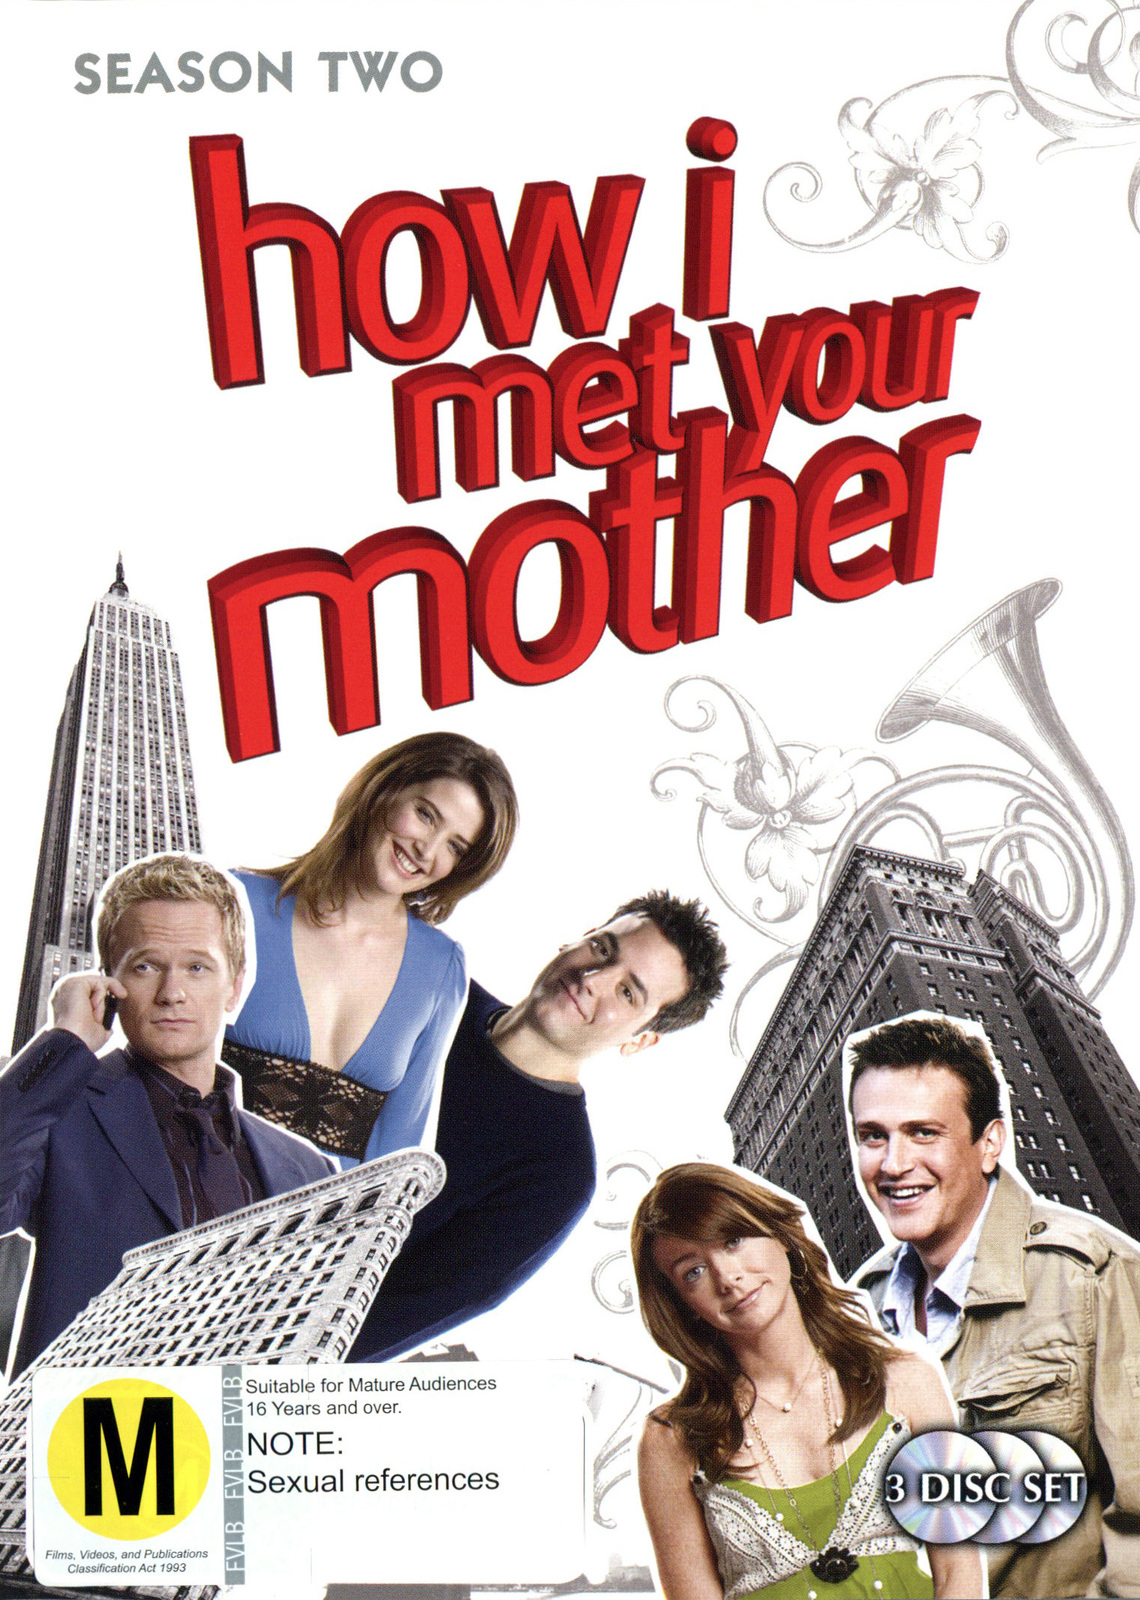 How I Met Your Mother - Season 2 (3 Disc Set) on DVD image